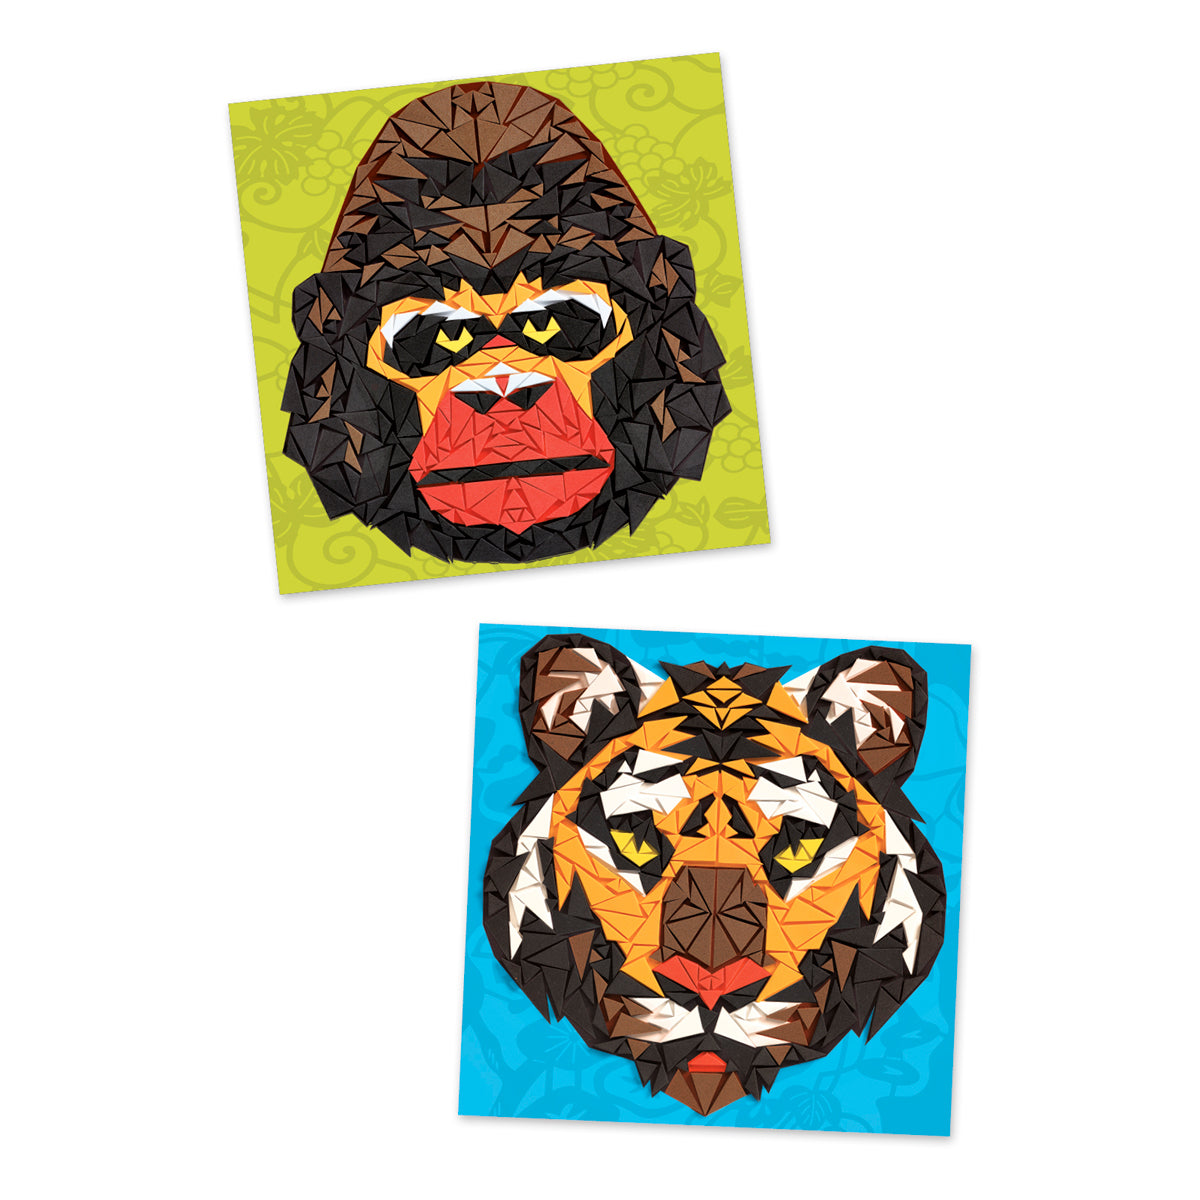 Mosaics Khan Djeco 8-14 years tiger and gorilla